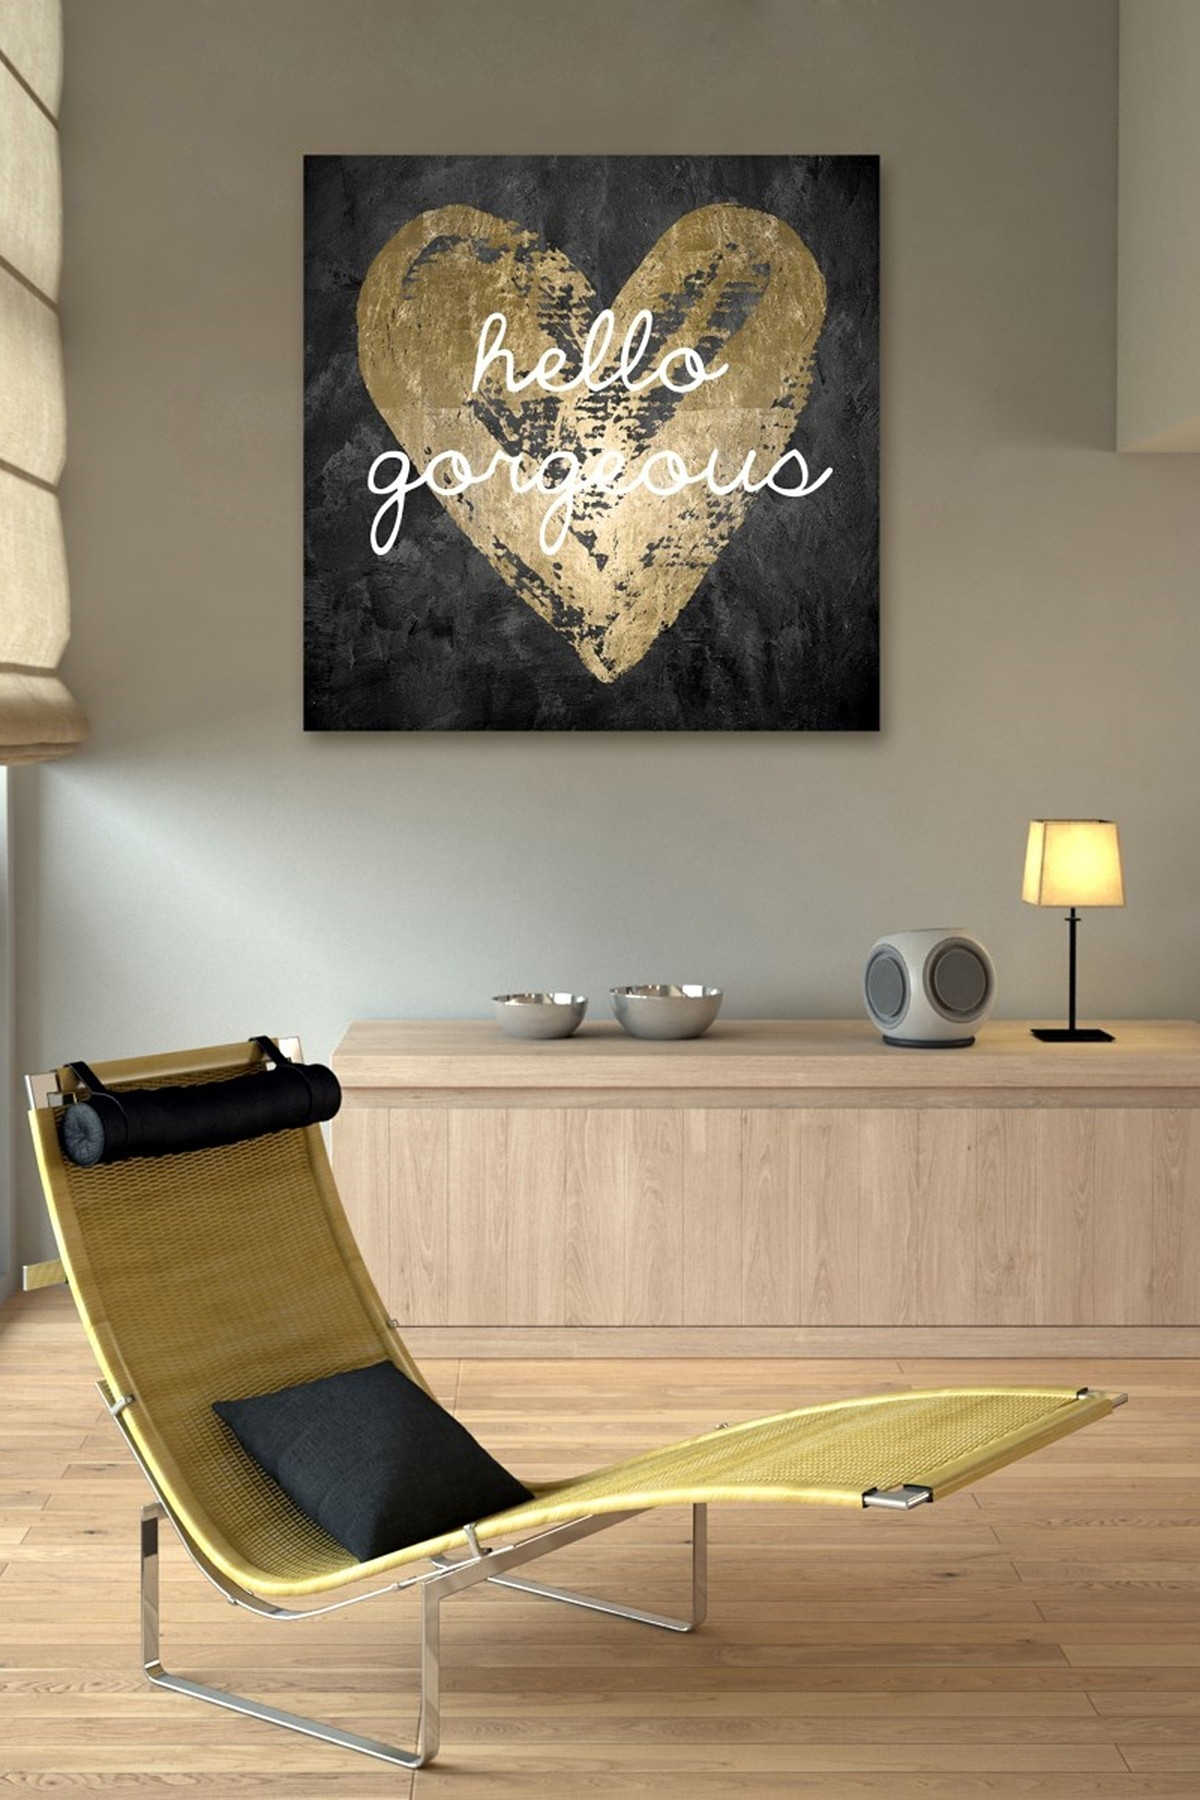 Pineleanor G On Wantee | Pinterest | Oliver Gal, Canvases And In Best And Newest Hearts Canvas Wall Art (Gallery 11 of 15)